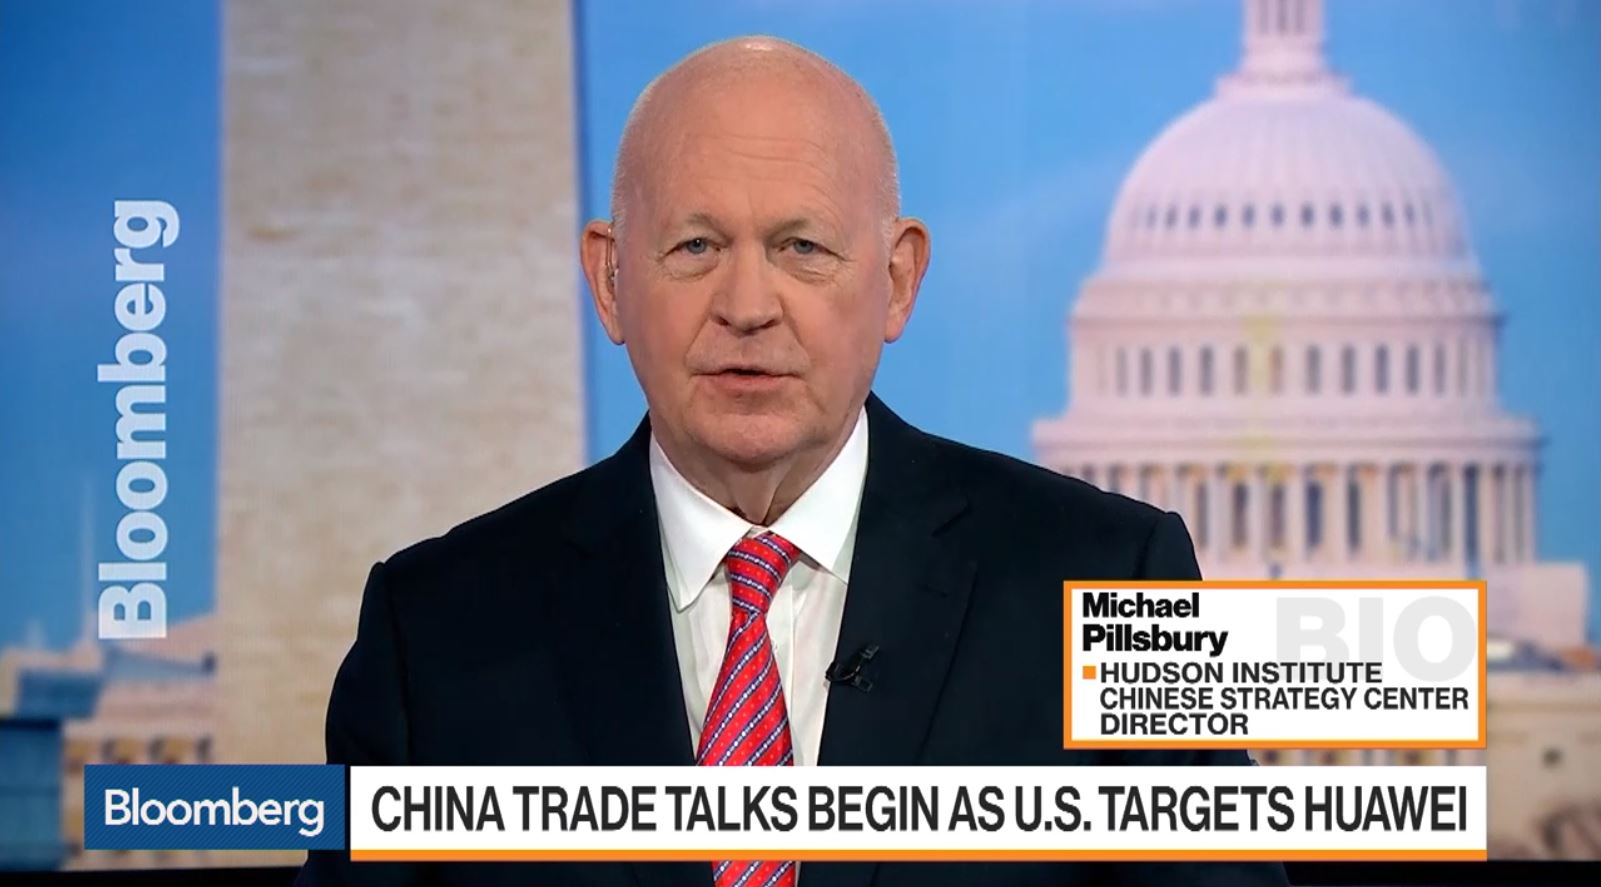 Michael Pillsbury discusses the state of trade negotiations between the U.S. and China, January 29, 2019